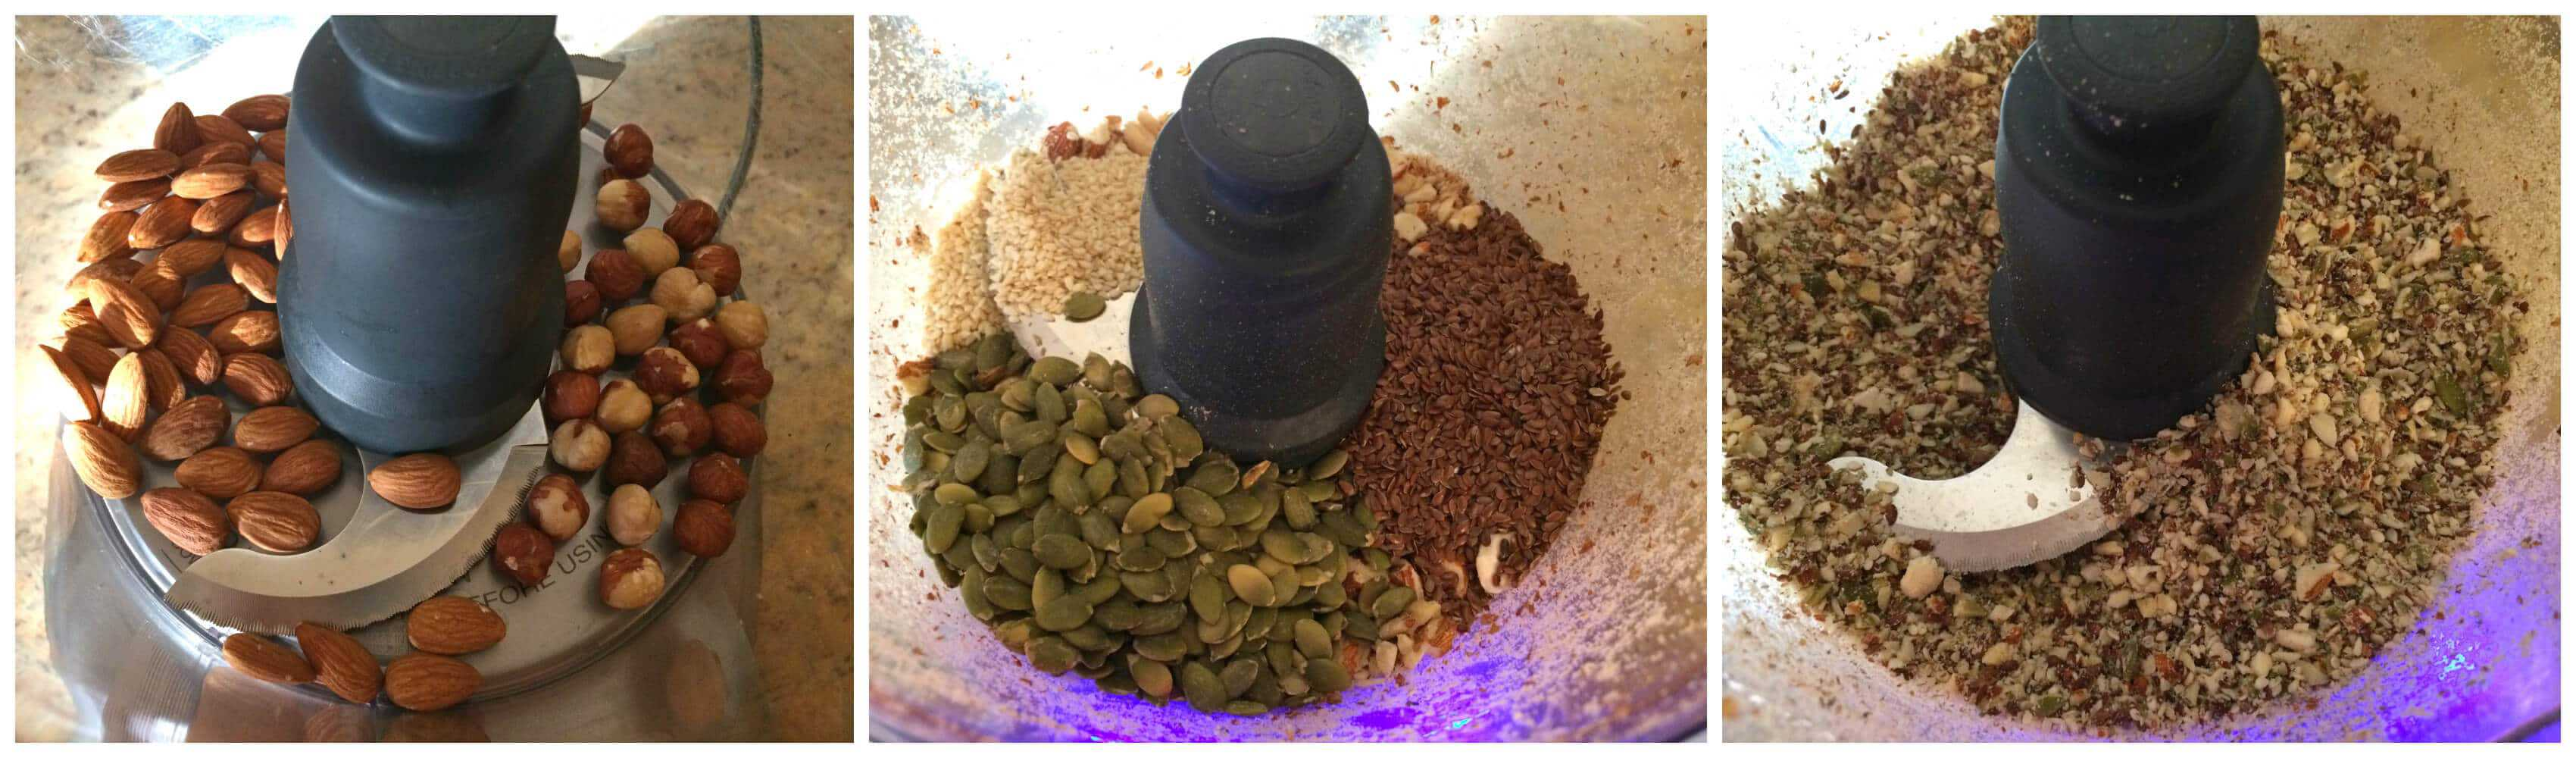 grinding nuts and seeds in food processor